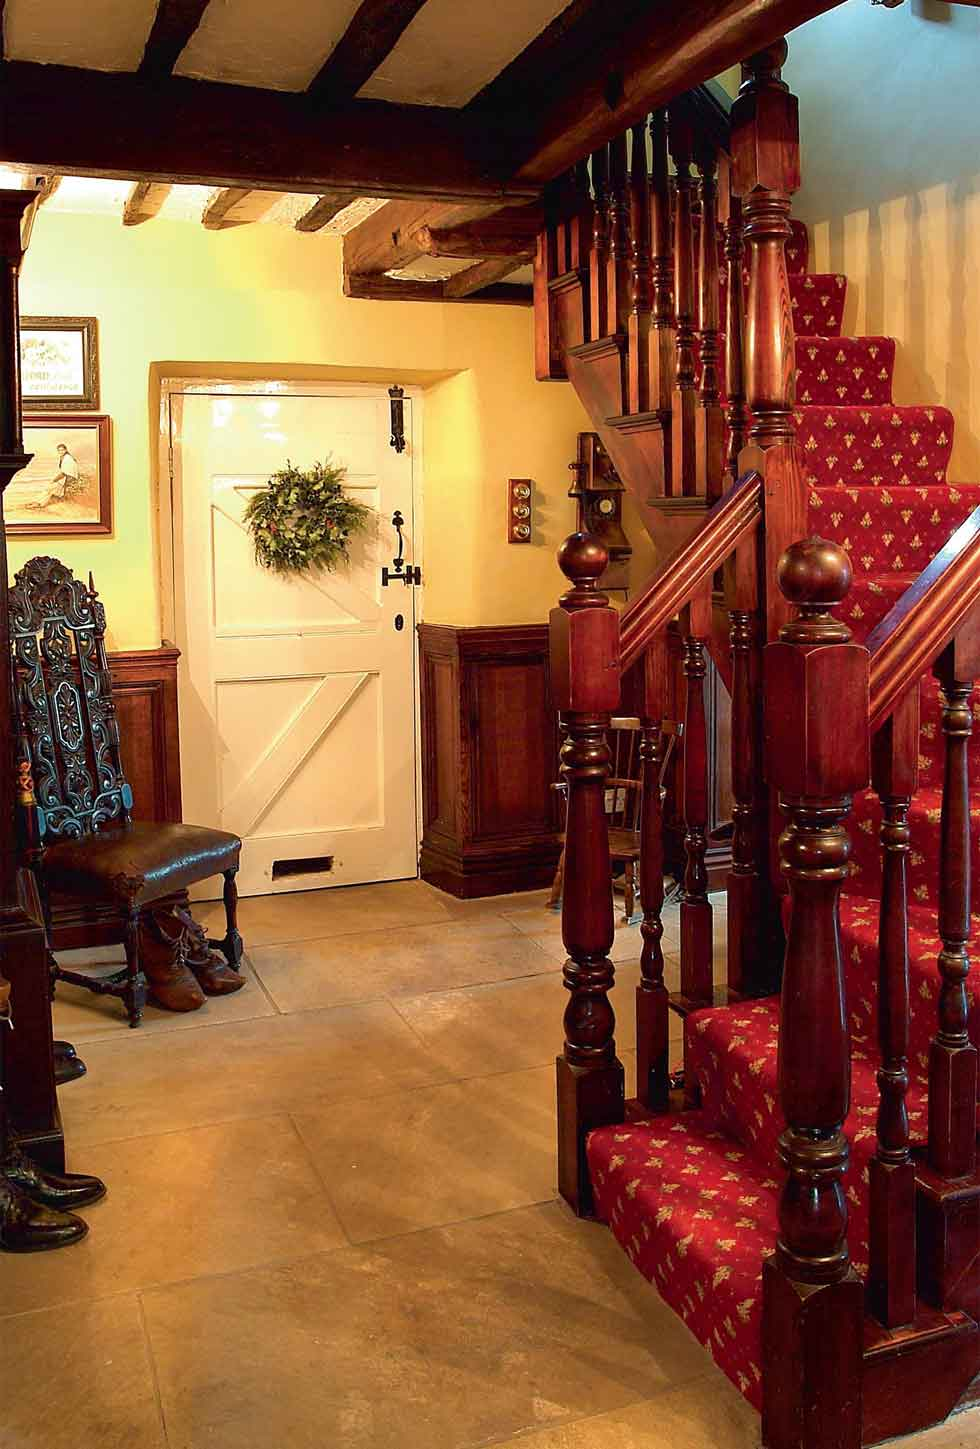 The hall and staircase